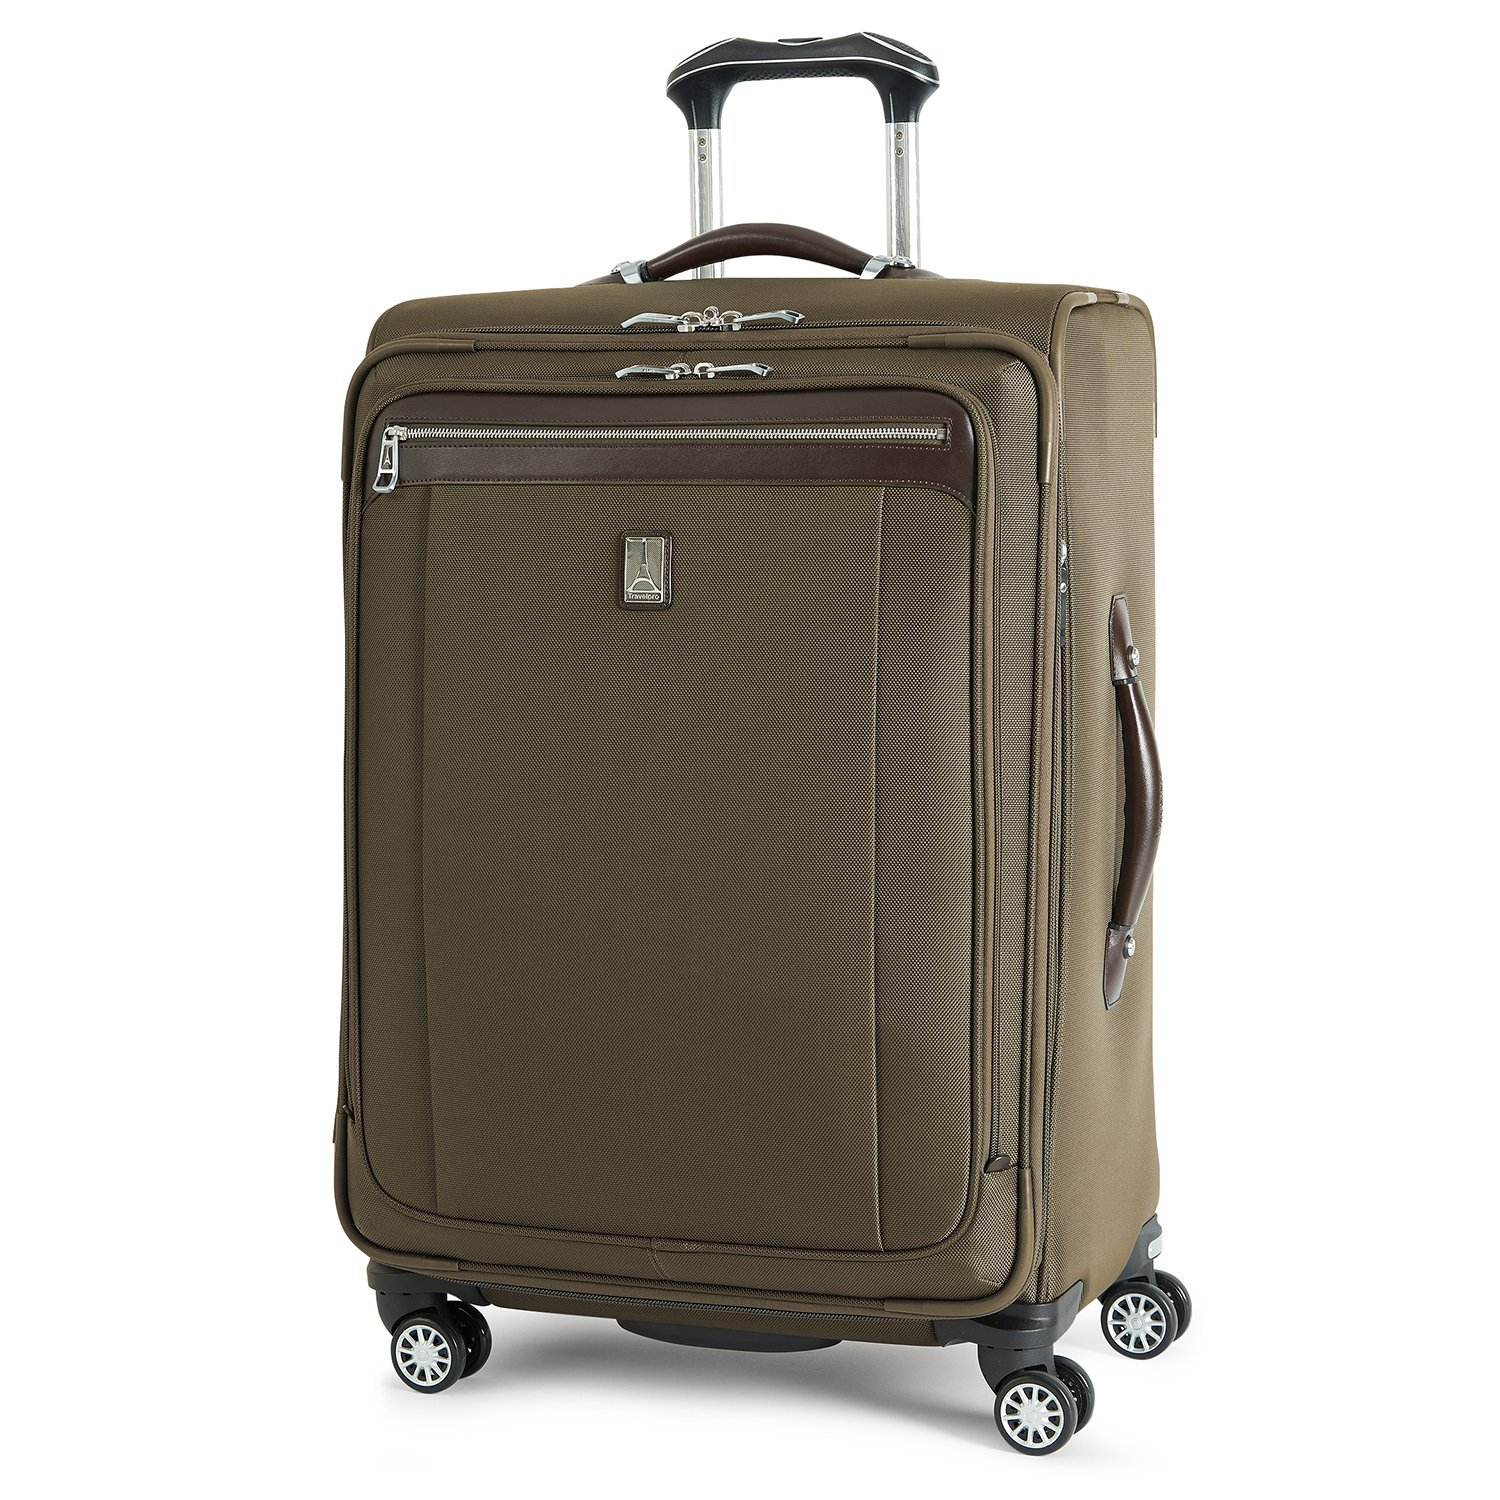 Travelpro PlatinumMagna2 Expandable Spinner Suiter Suitcase, 25-in., Olive